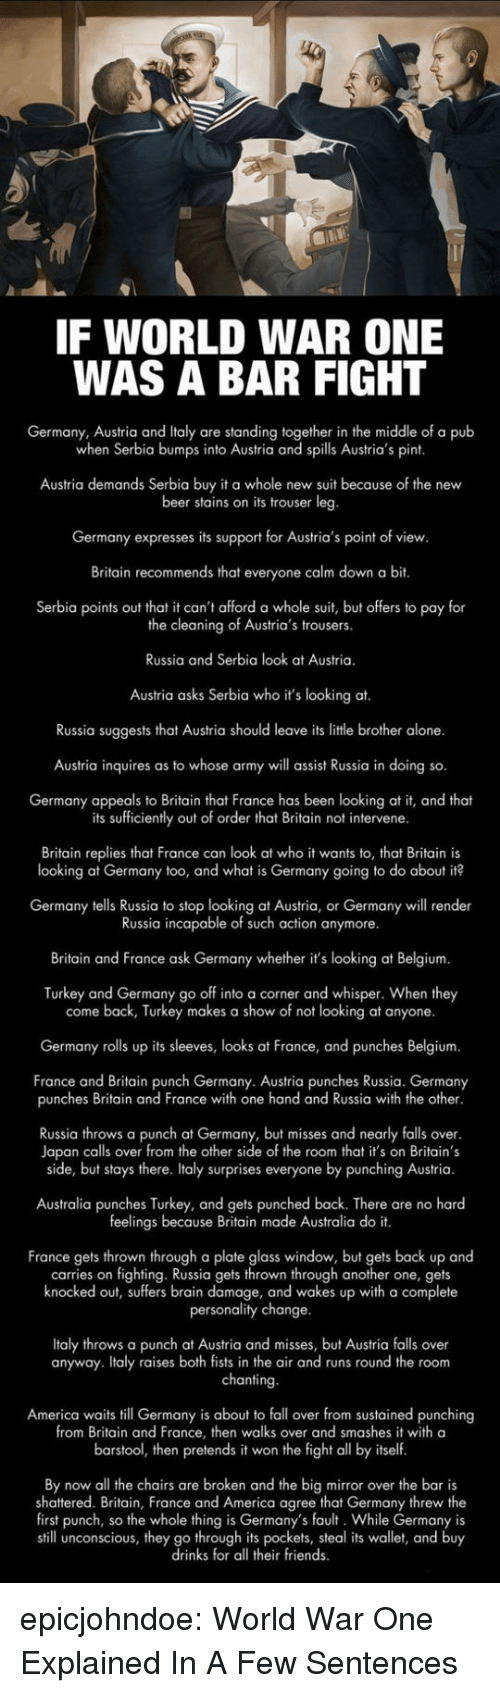 Being Alone, America, and Another One: IF WORLD WAR ONE  WAS A BAR FIGHT  Germany, Austria and Italy are standing together in the middle of a pub  when Serbia bumps into Austria and spills Austria's pint  Austria demands Serbia buy it a whole new suit because of the new  beer stains on its trouser leg  Germany expresses its support for Austria's point of view  Britain recommends that everyone calm down a bit.  Serbia points out that it can't afford a whole suit, but offers to pay for  the cleaning of Austria's trousers.  Russia and Serbia look at Austria.  Austria asks Serbia who it's looking at.  Russia suggests that Austria should leave its litle brother alone.  Austria inquires as to whose army will assist Russia in doing so.  Germany appeals to Britain that France has been looking at it, and theat  its sufficiently out of order that Britain not intervene  Britain replies that France can look at who it wants to, that Britain is  looking at Germany too, and what is Germany going to do about it?  Germany tells Russia to stop looking at Austria, or Germany will render  Russia incapable of such action anymore.  Britain and France ask Germany whether it's looking at Belgium  Turkey and Germany go off into a corner and whisper. When they  come back, Turkey makes a show of not looking at anyone.  Germany rolls up its sleeves, looks at France, and punches Belgium.  France and Britain punch Germany. Austria punches Russia. Germany  punches Britain and France with one hand and Russia with the other  Russia throws a punch at Germany, but misses and nearly falls over  Japan calls over from the other side of the room that it's on Britain's  side, but stays there. Italy surprises everyone by punching Austria.  Australia punches Turkey, and gets punched back. There are no hard  feelings because Britain made Australia do it.  France gets thrown through a plate glass window, but gets back up and  carries on fighting. Russia gets thrown through another one, gets  knocked out, suffers brain damage, and wakes up with a complete  personality change  Italy throws a punch at Austria and misses, but Austria falls over  anyway. Italy raises both fists in the air and runs round the room  chanting  America waits till Germany is about to fall over from sustained punching  from Britain and France, then walks over and smashes it with a  barstool, then pretends it won the fight all by itself  By now all the chairs are broken and the big mirror over the bar is  shattered. Britain, France and America agree that Germany threw the  first punch, so the whole thing is Germany's fault. While Germany is  still unconscious, they go through its pockets, steal its wallet, and buy  drinks for all their friends epicjohndoe:  World War One Explained In A Few Sentences